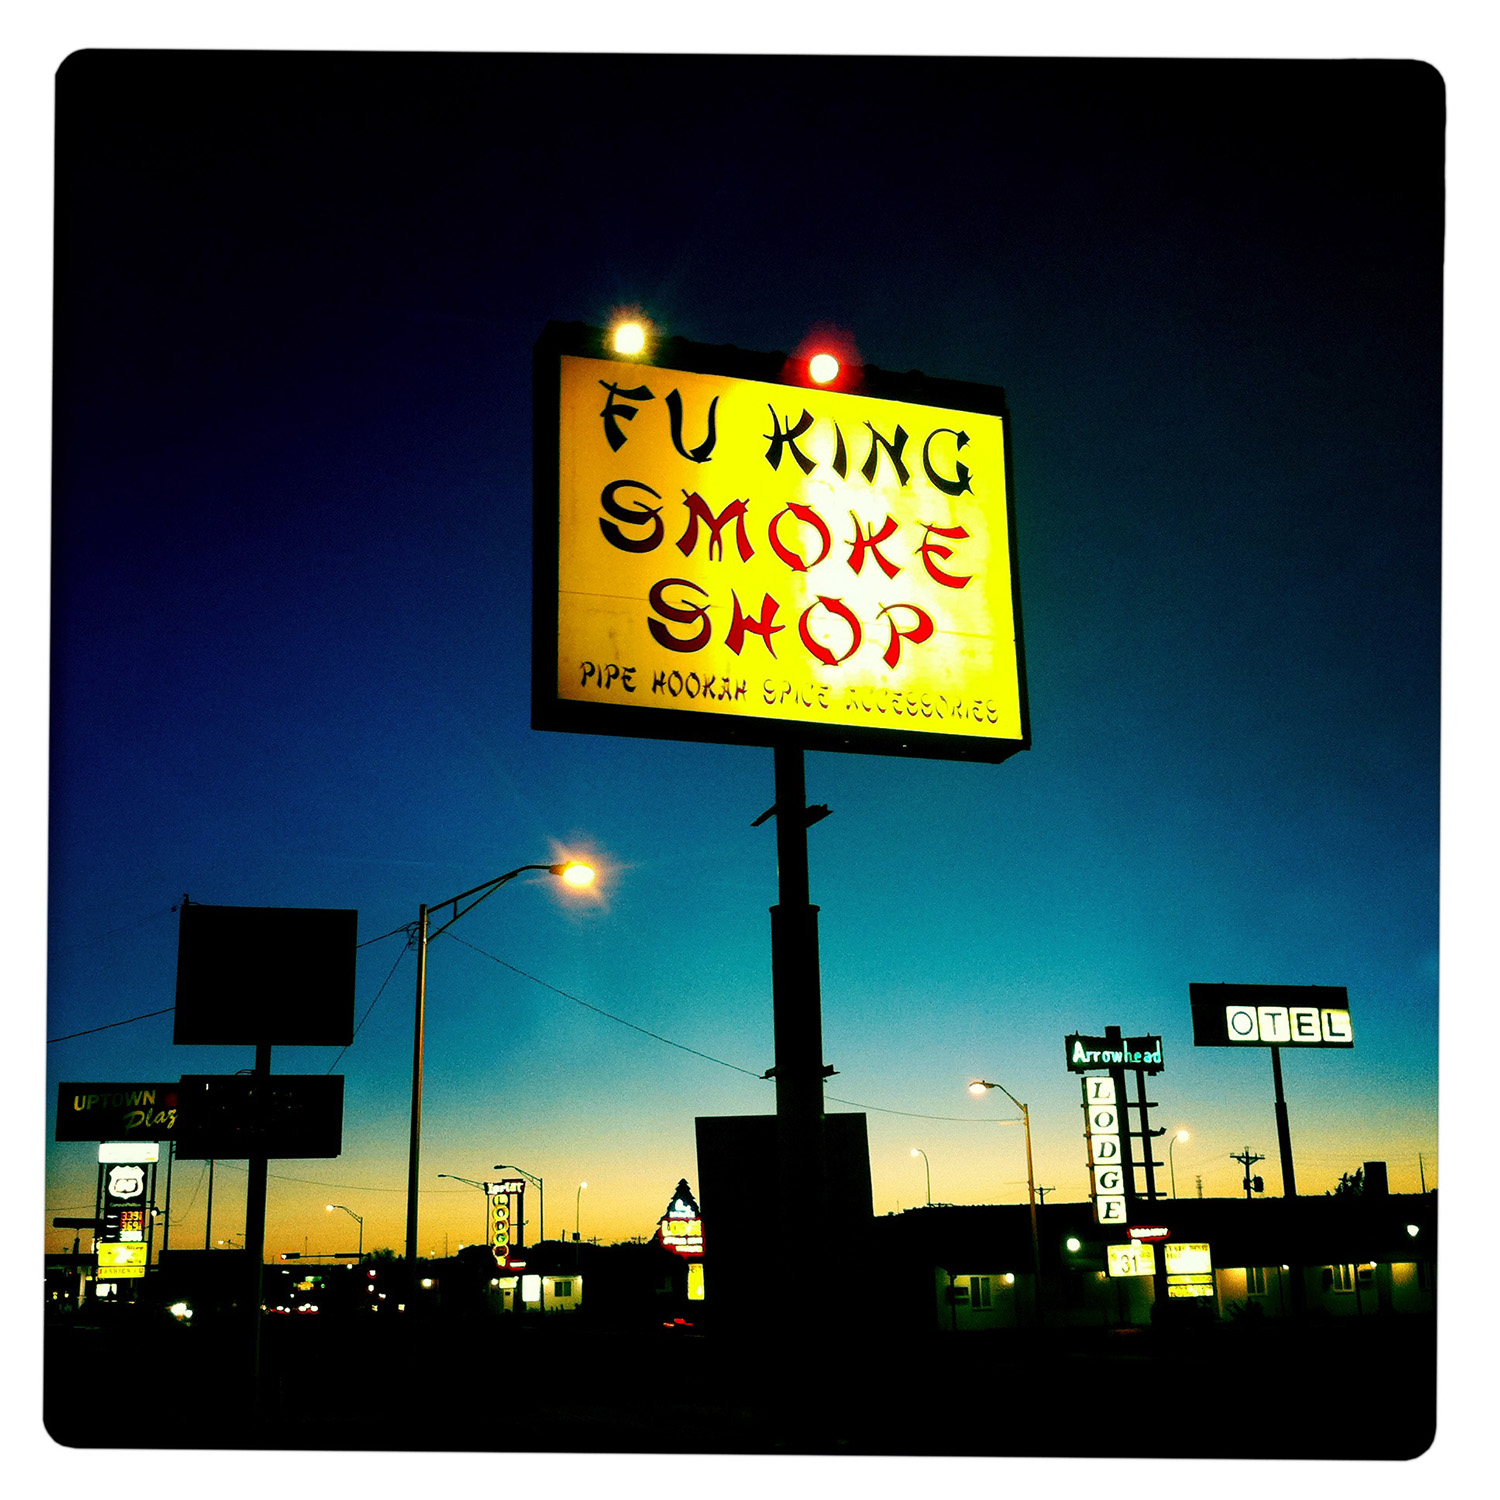 Fu King Smokeshop in Gallup NW New Mexico